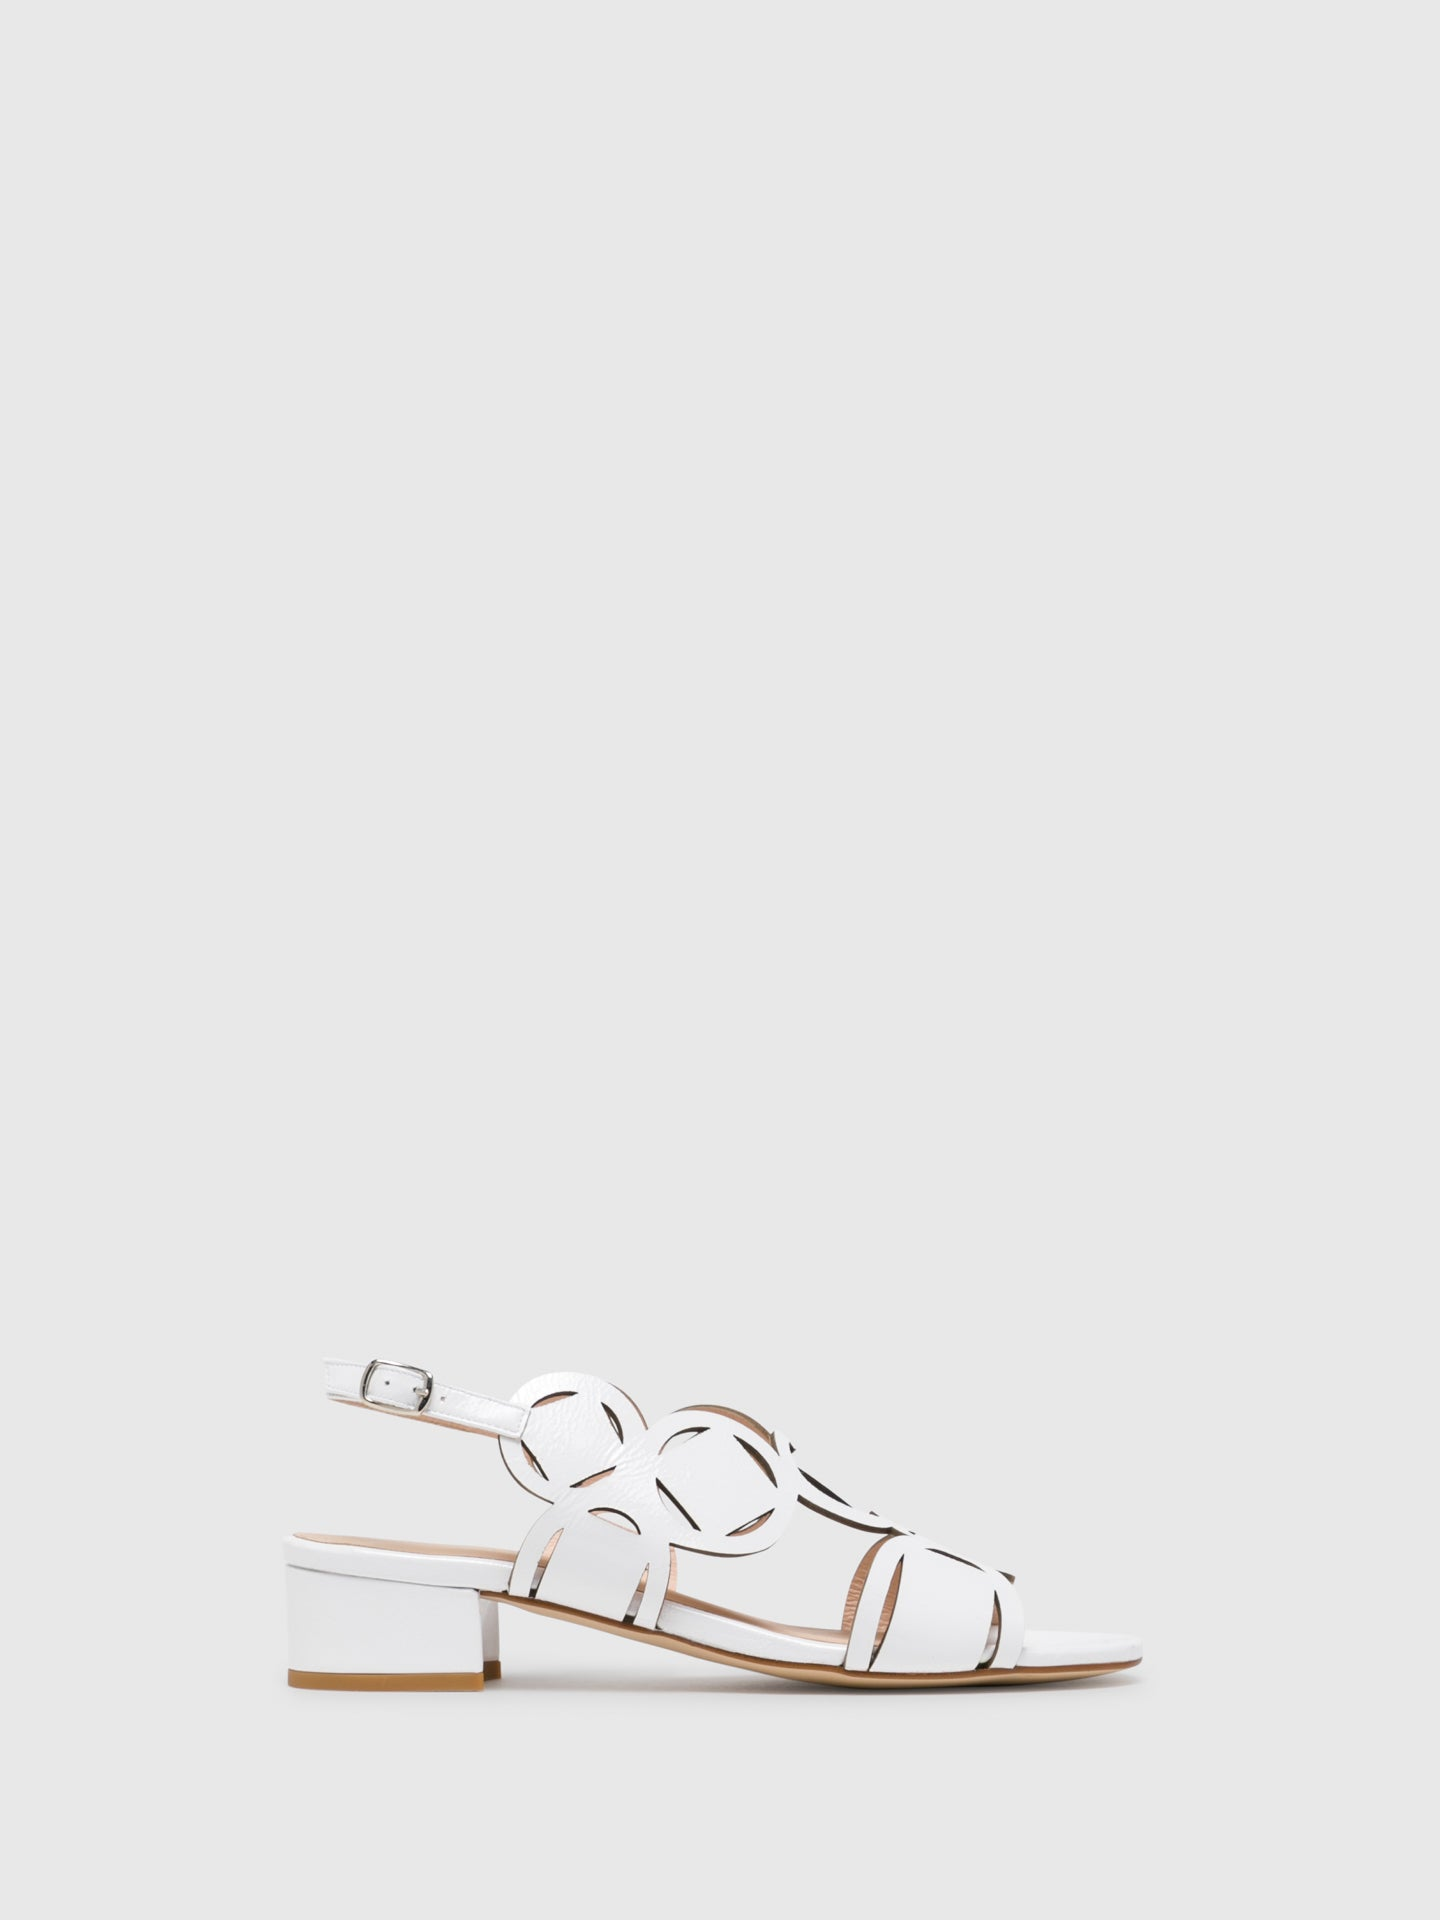 Sofia Costa White Buckle Sandals